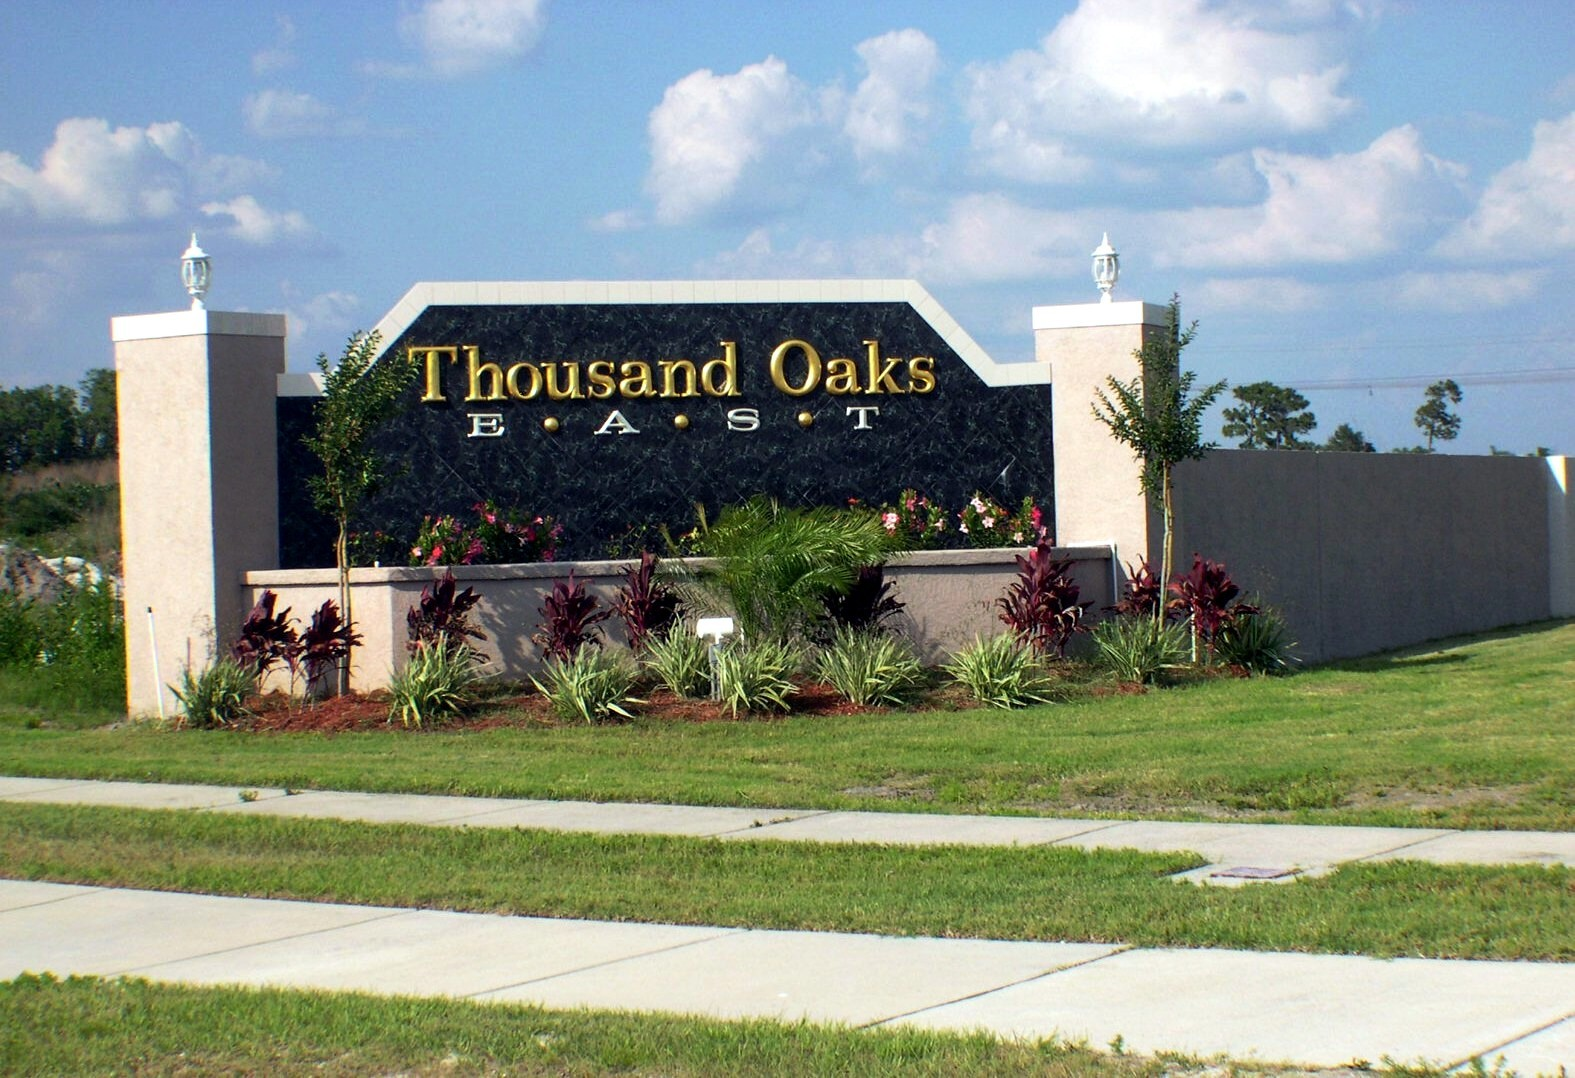 thousand oaks Get the thousand oaks weather forecast access hourly, 10 day and 15 day forecasts along with up to the minute reports and videos for thousand oaks, ca 91362 from accuweathercom.